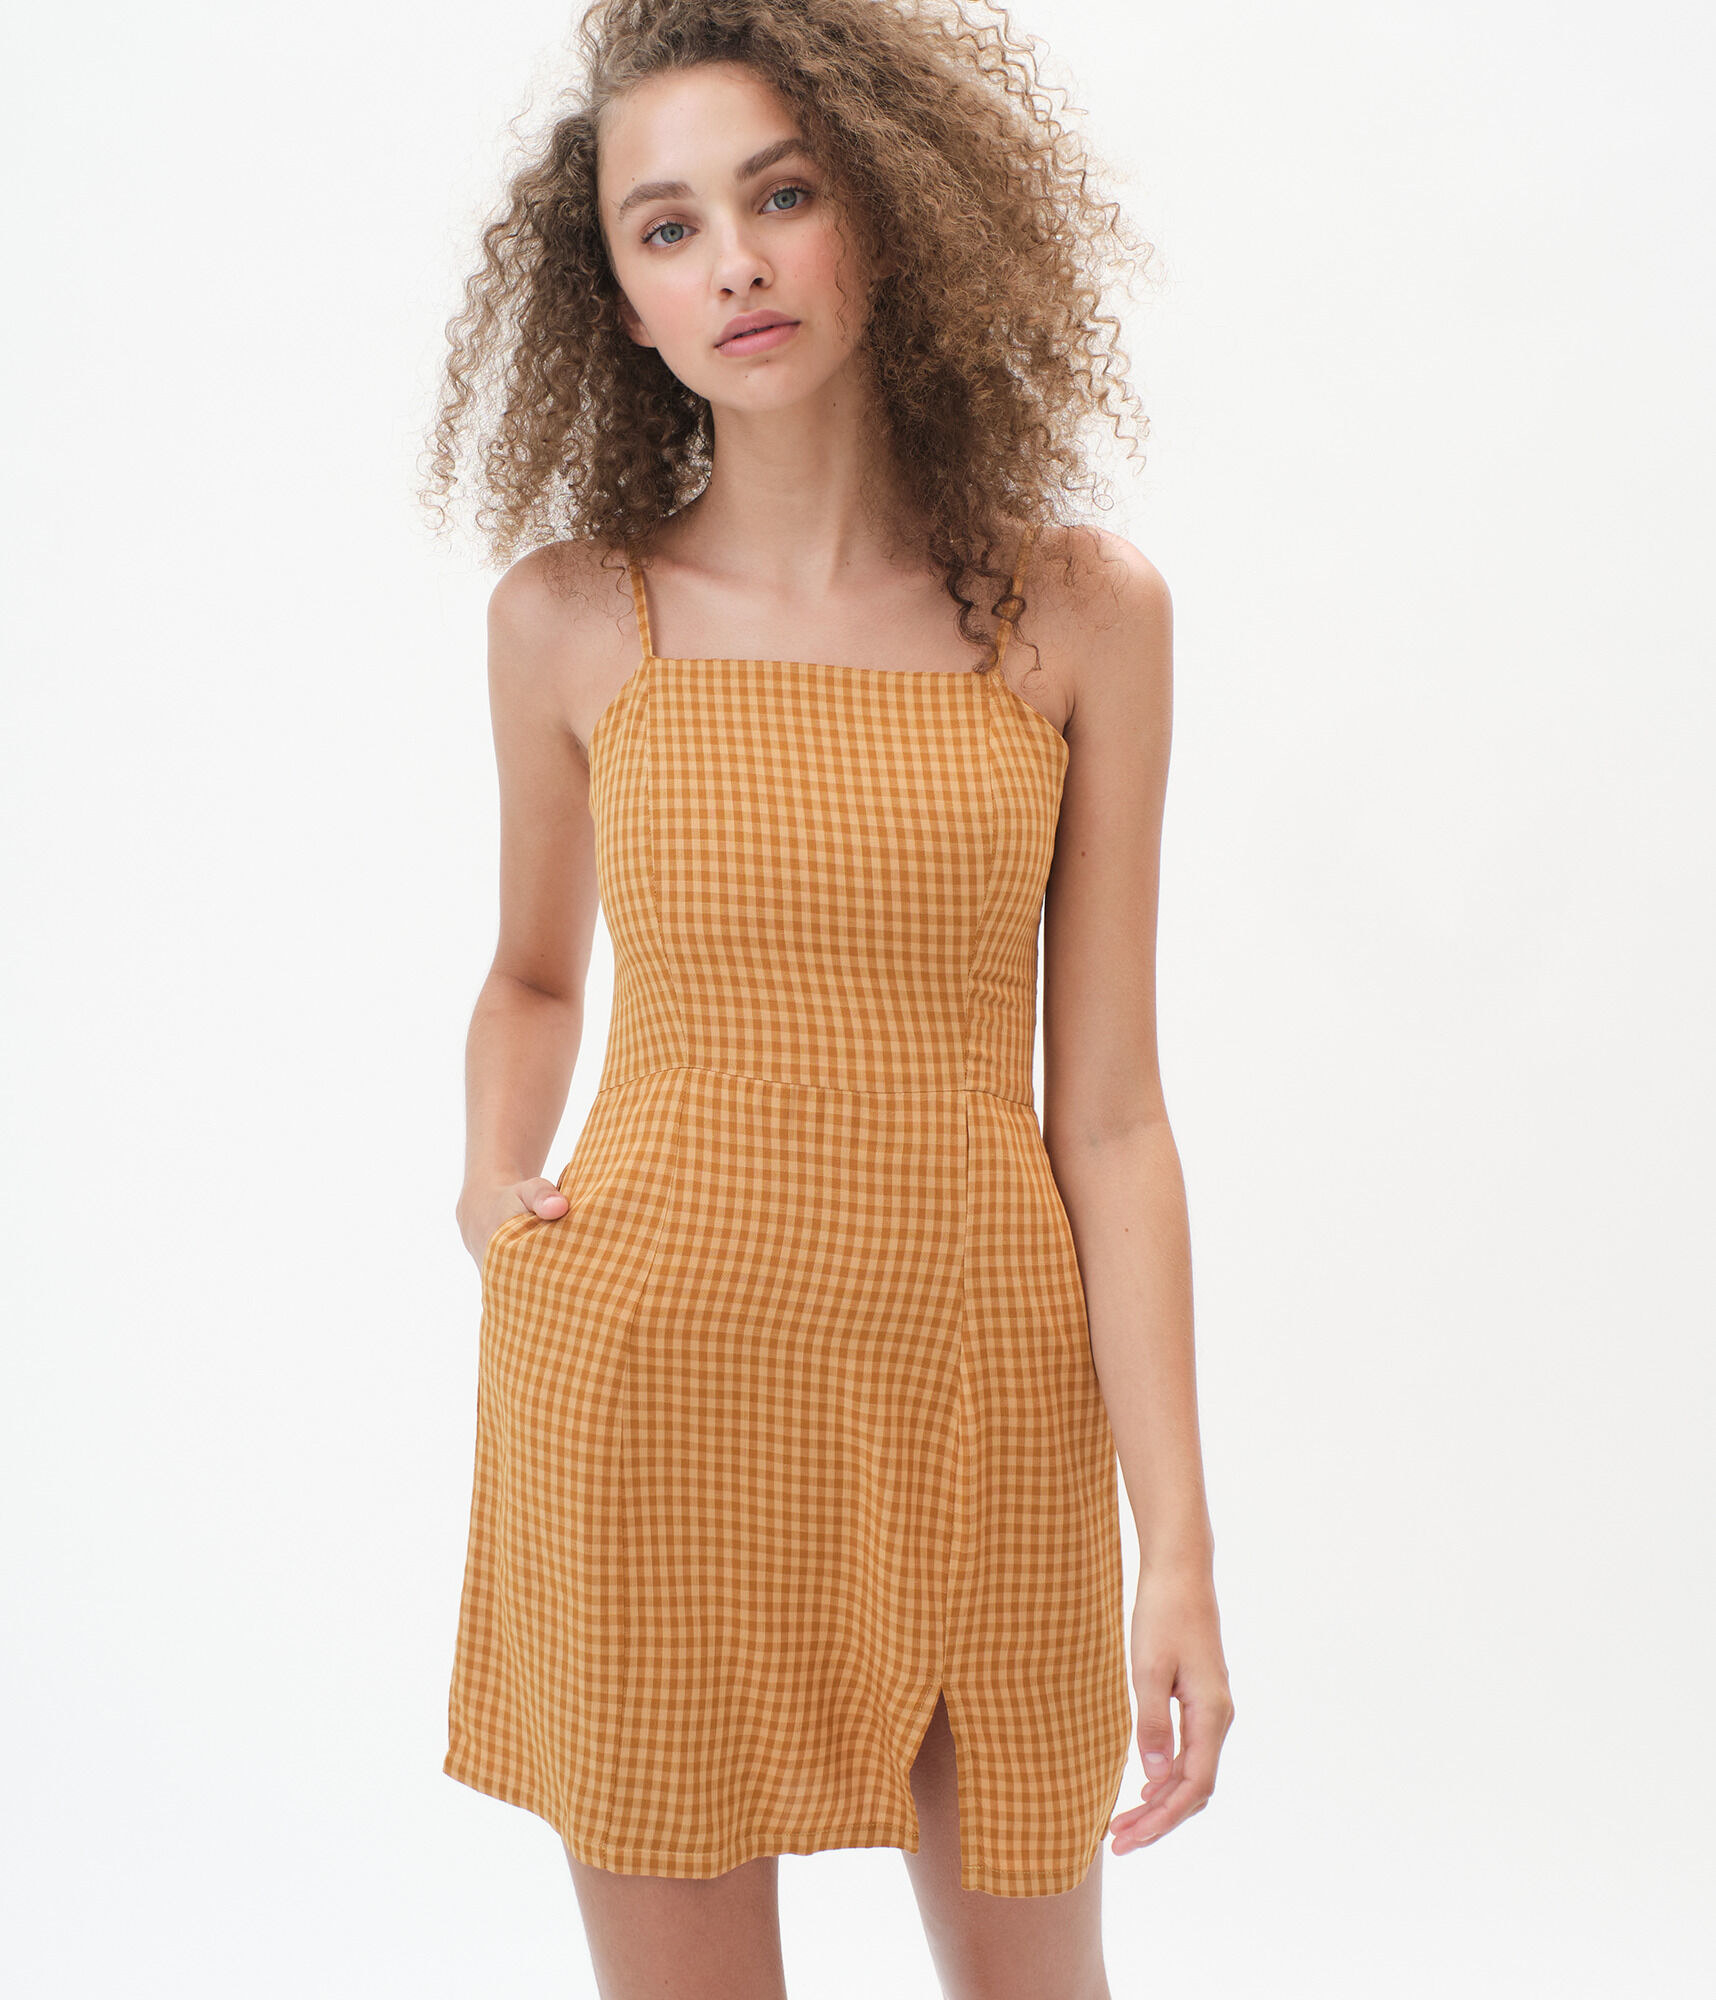 a model in a yellow gingham print mini dress with her hand in the pocket